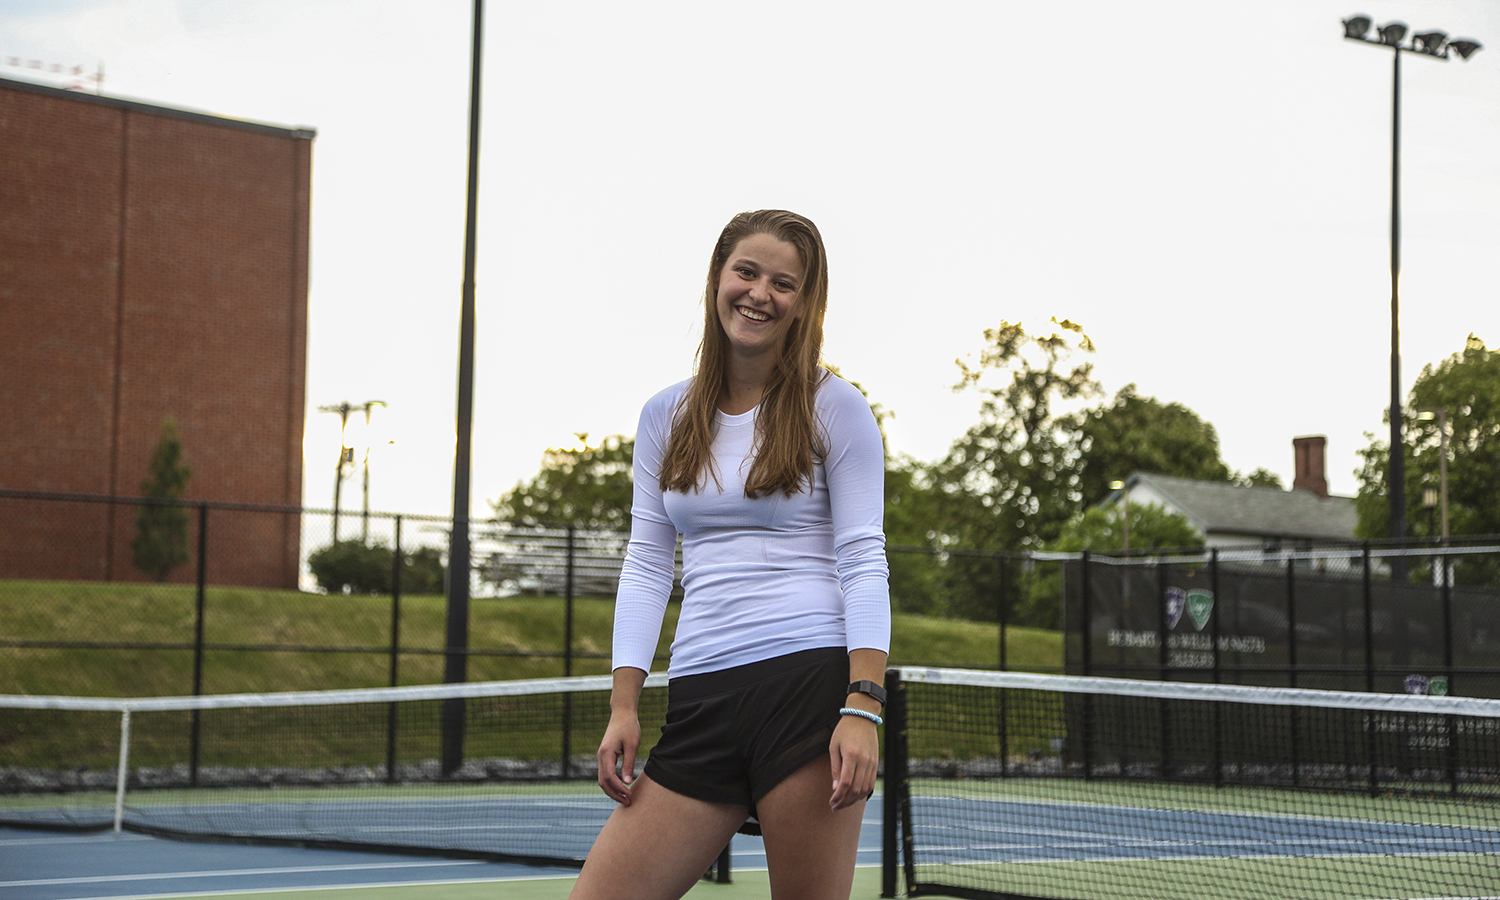 "Sophomore Kate Foley is pictured on the Marrow Championship Court saying, ""Tennis was the one thing I knew as a first year, and it gave me an escape when school became overwhelming."" Kate is on campus this summer doing biology research with Professor Susan Cushman in the Biology Department."